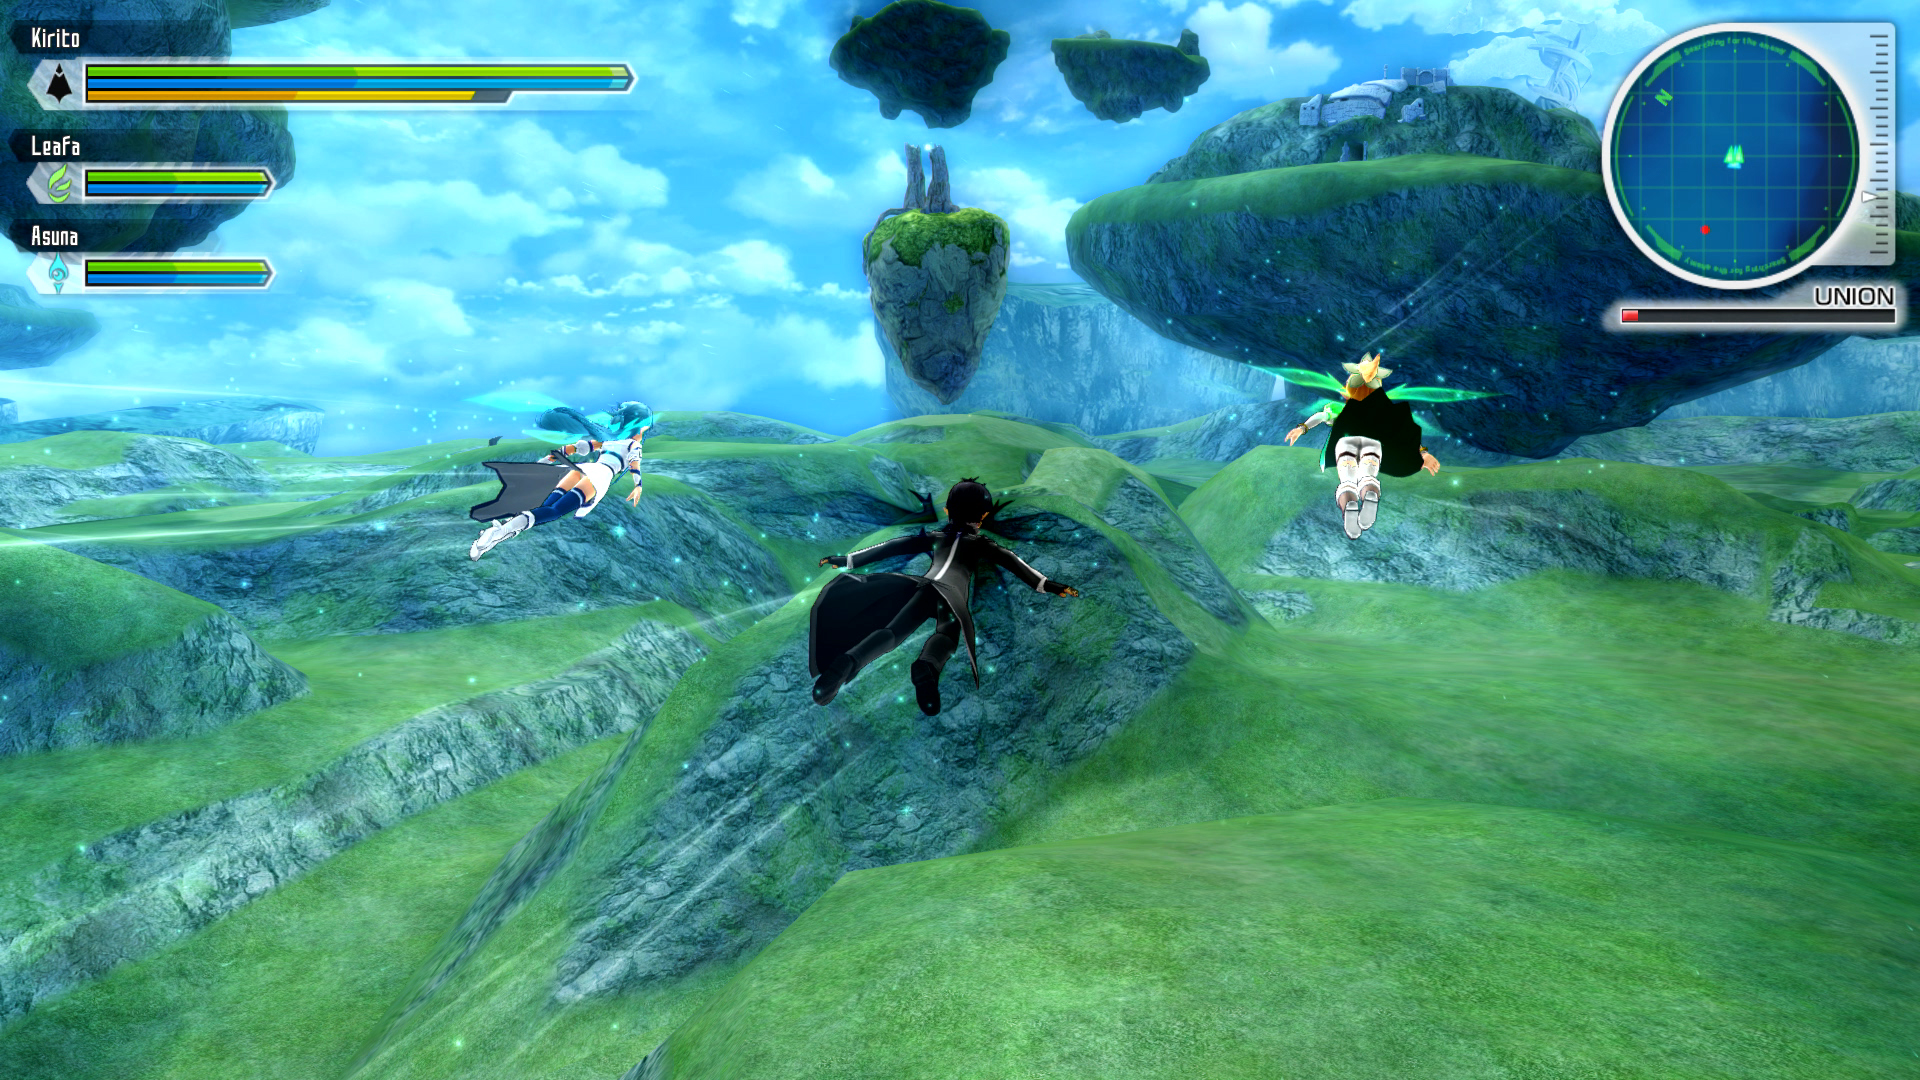 Sword Art Online Re: Hollow Fragment & Sword Art Online: Lost Song Coming To Europe